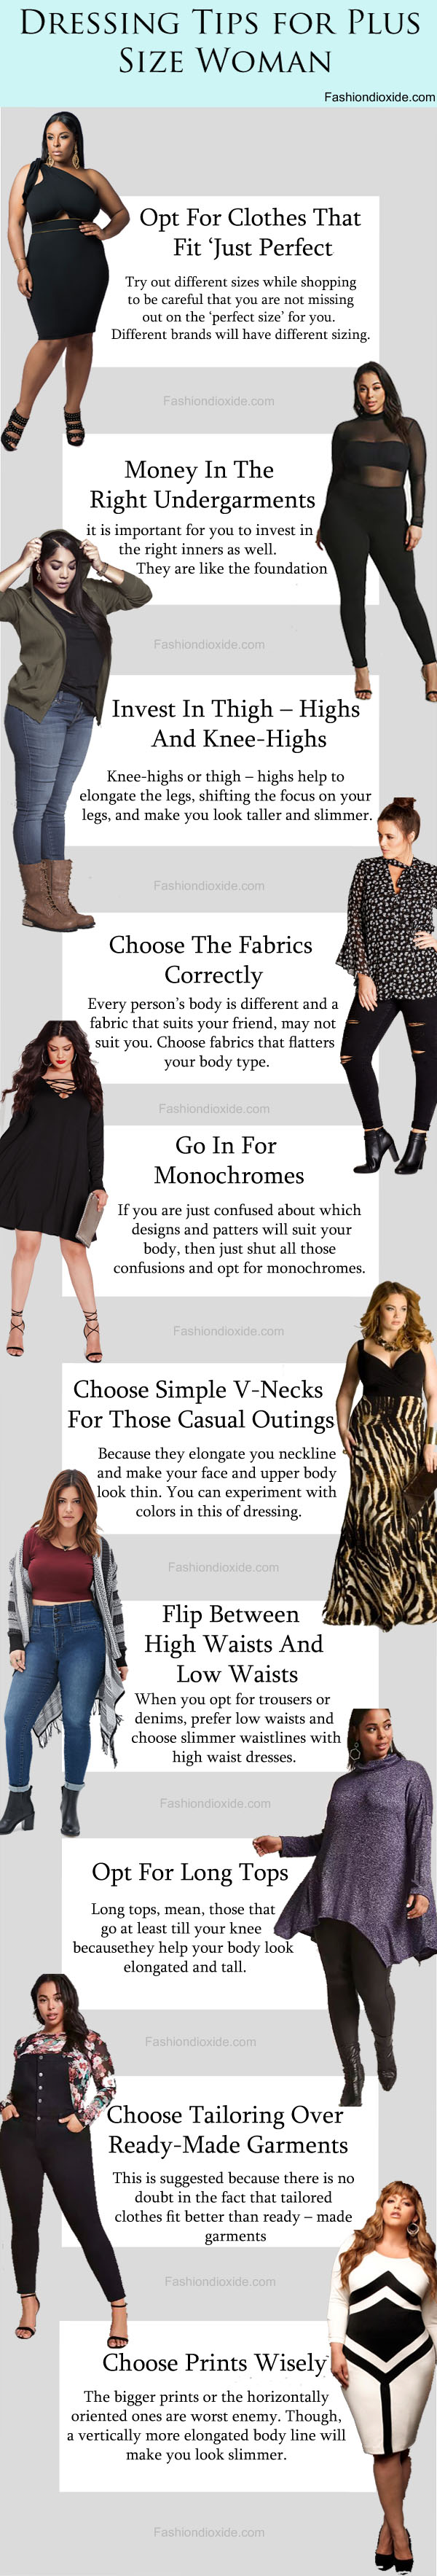 dressing-Tips-for-Plus-Size-Woman